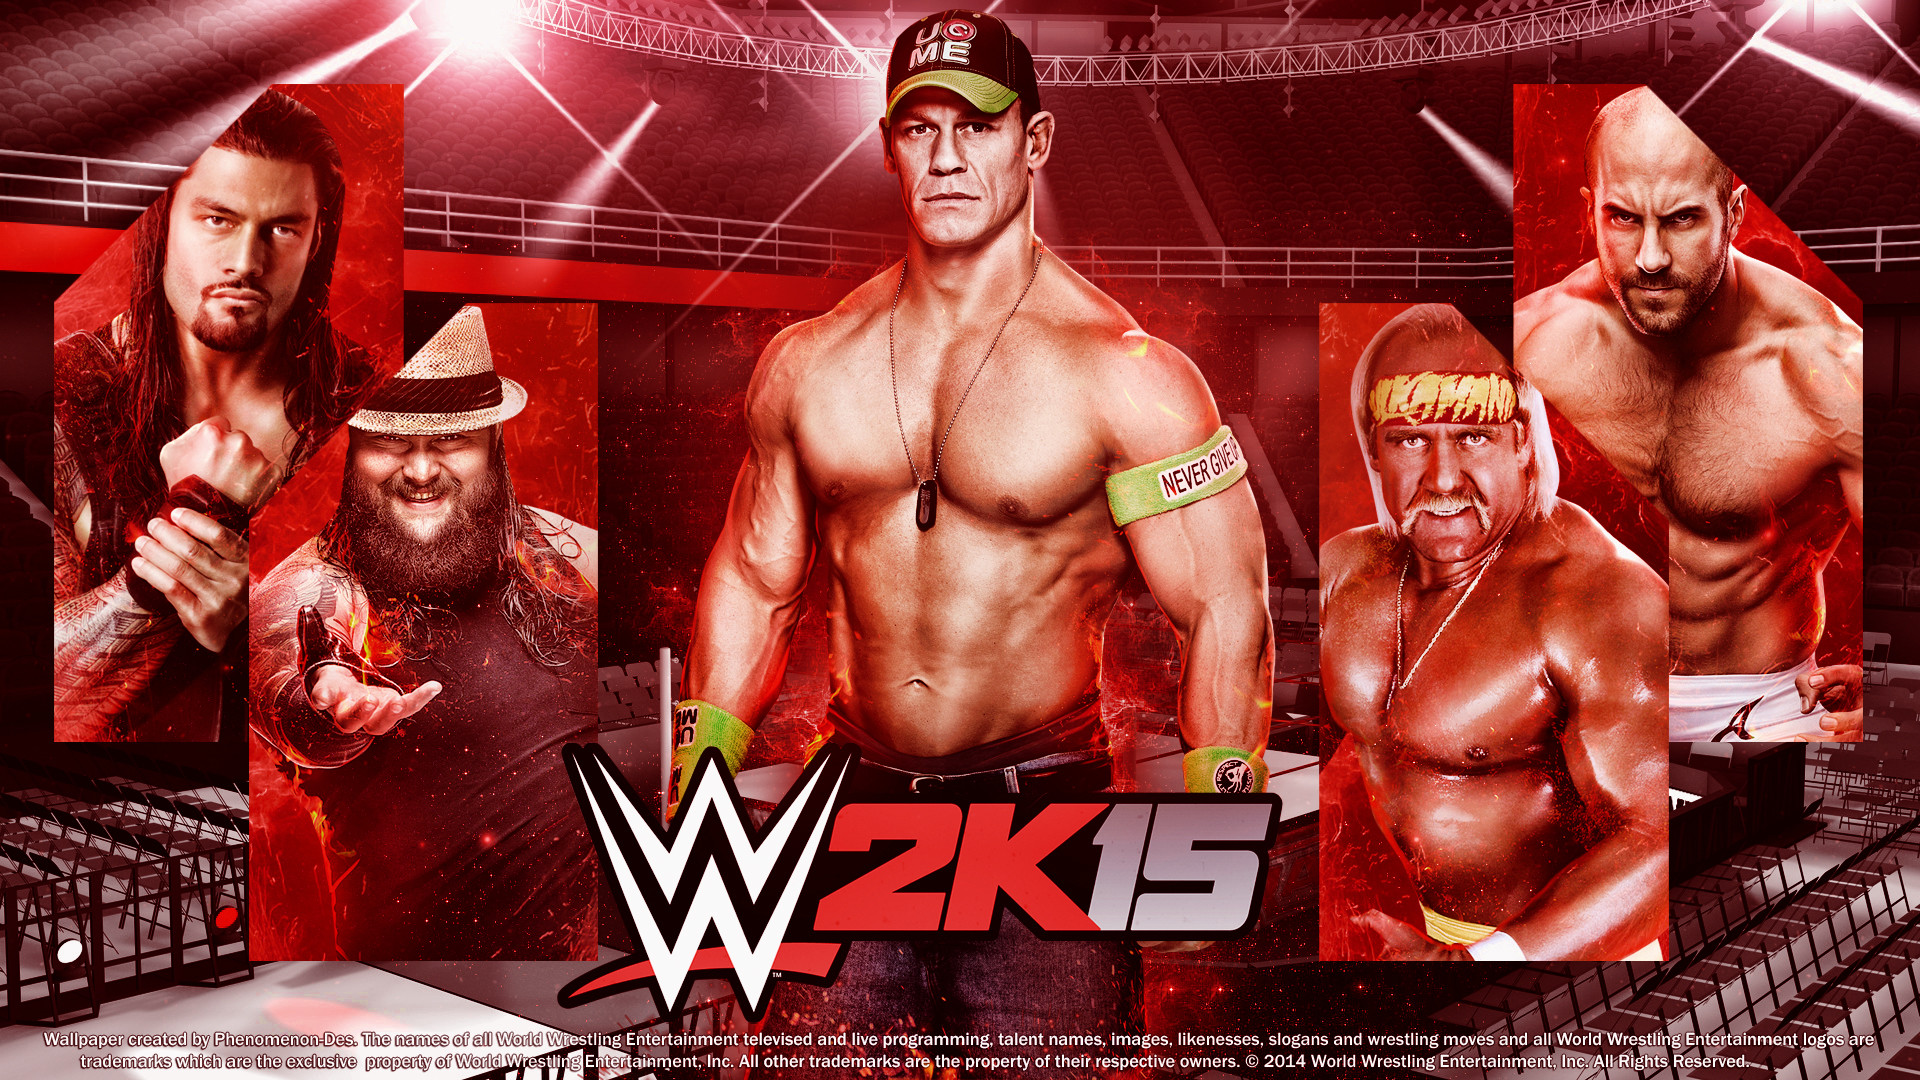 1920x1080 WWE2K15 Wallpaper JohnCena WWE2K15 Wallpaper HulkHogan WWE2K15 Wallpaper  BrayWyatt WWE2K15 Wallpaper JohnCena Art WWE2K15 Wallpaper Logo WWE2K15  Wallpaper ...